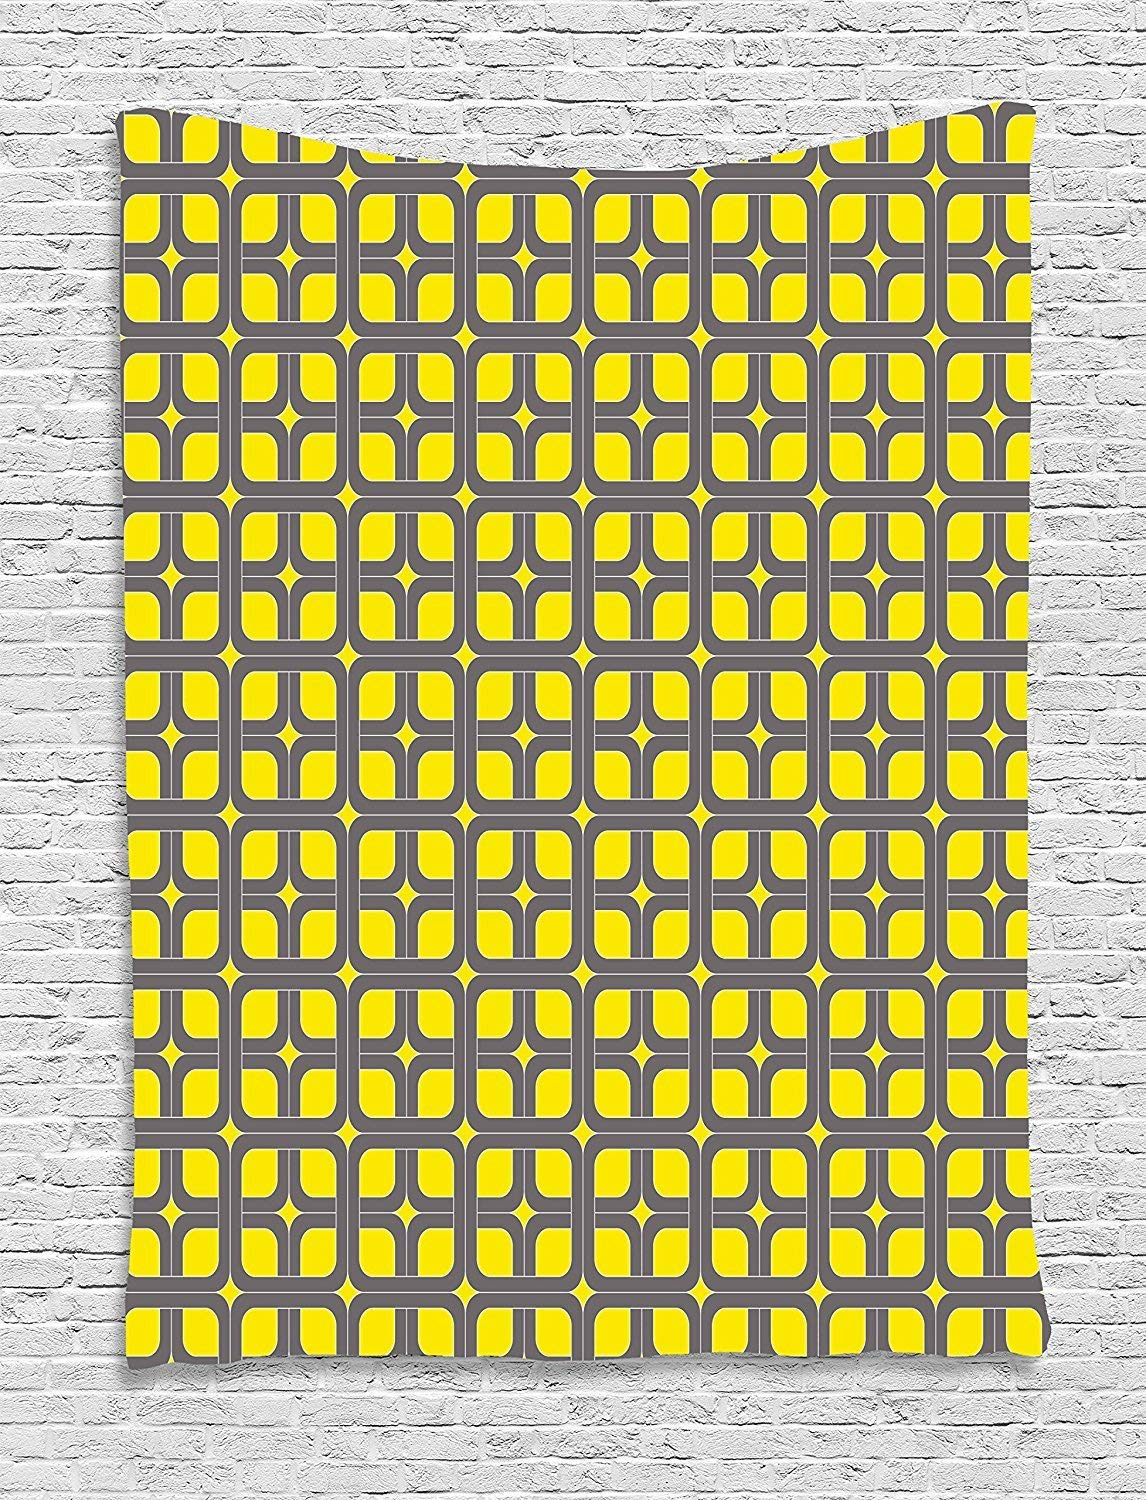 XHFITCLtd Modern Decor Tapestry, Geometric Image Squares and Borders Contemporary Minimalist Art, Wall Hanging for Bedroom Living Room Dorm, 40WX60L Inches, Yellow and Charcoal Grey